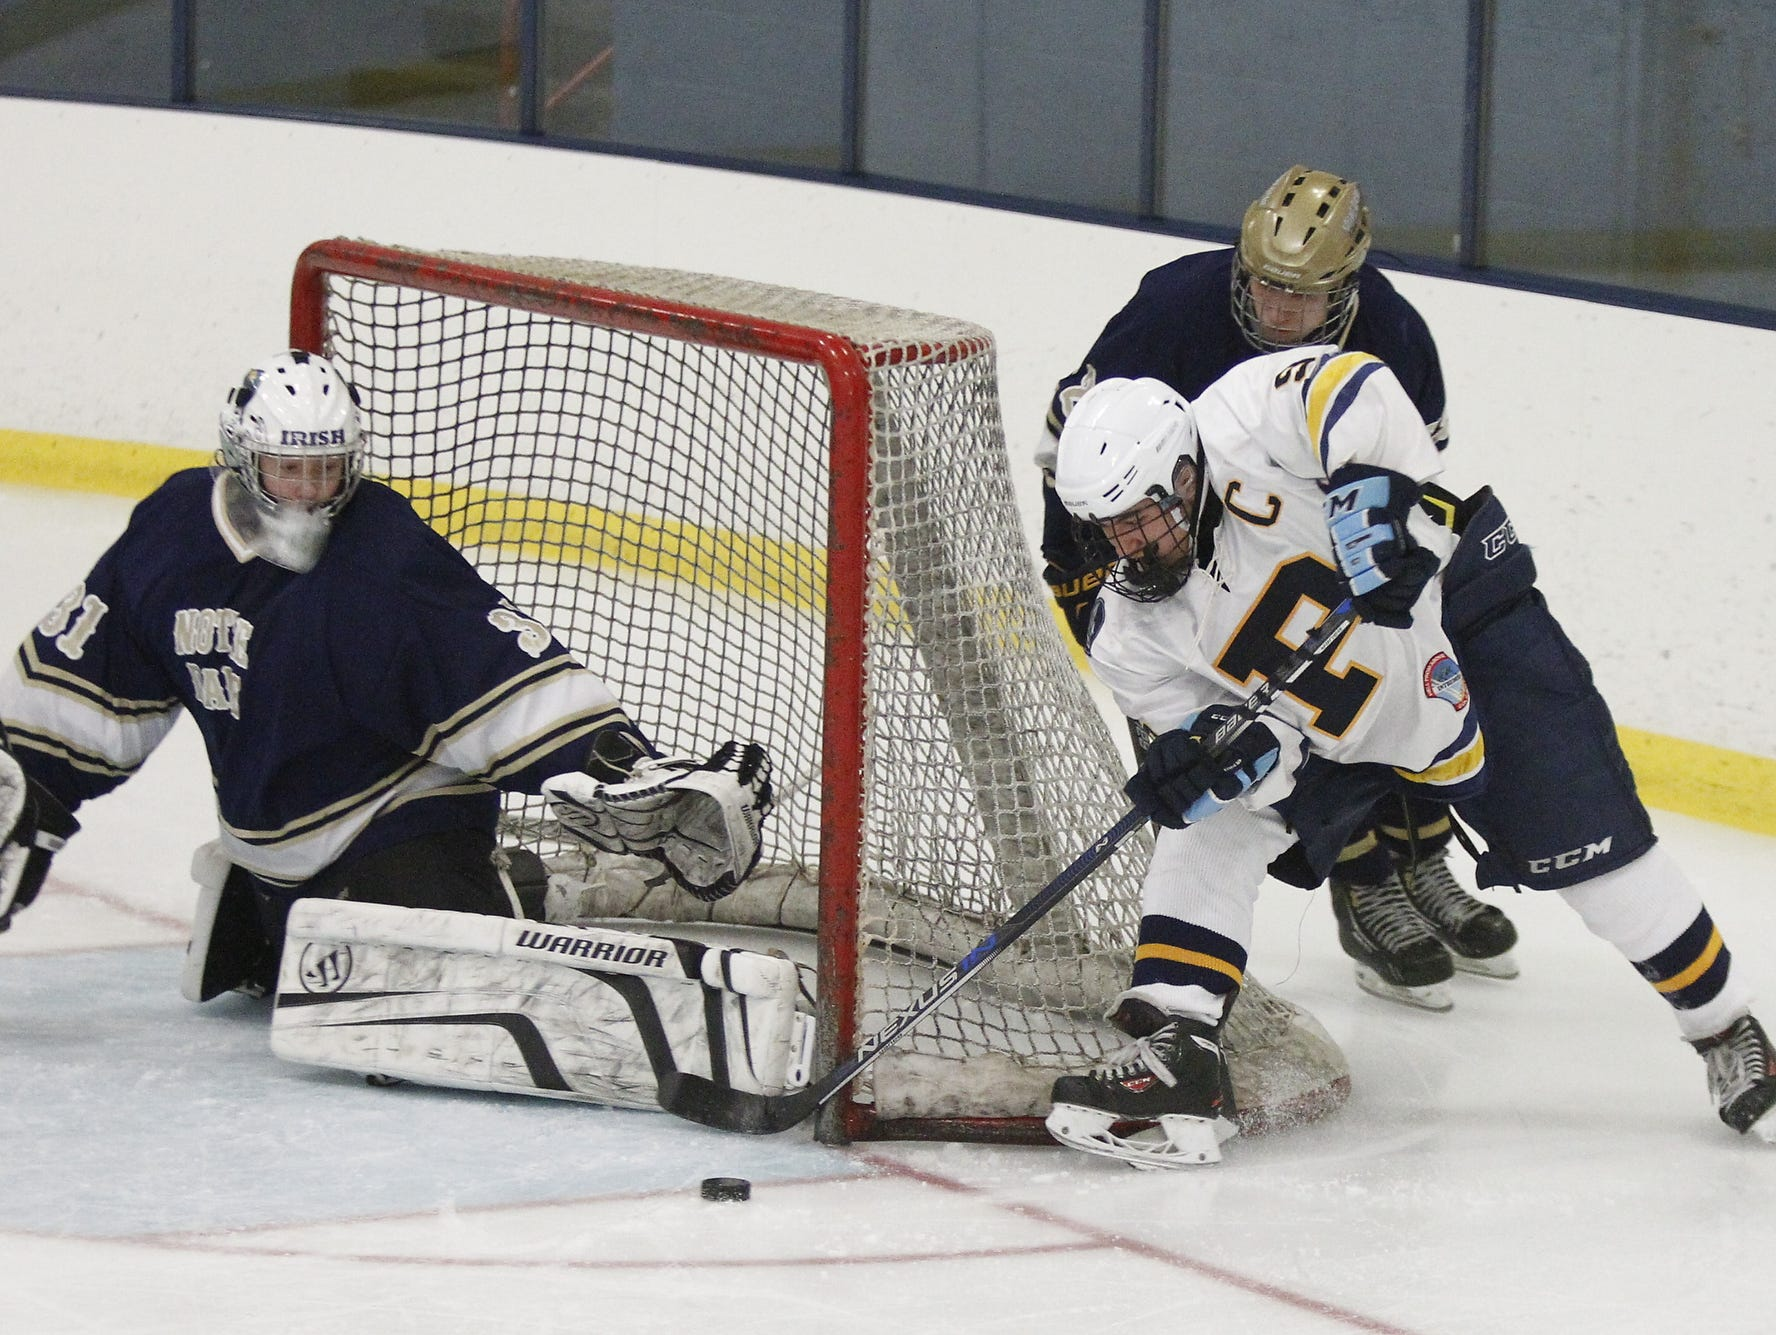 Pelham's Ben Hurd (9) attem[pts a wrap-around shot during their 4-2 win over Notre Dame-Batavia in the division 2 regional finals at Sport-O-Rama Ice Rink in Monsey on Saturday, March 05, 2016.